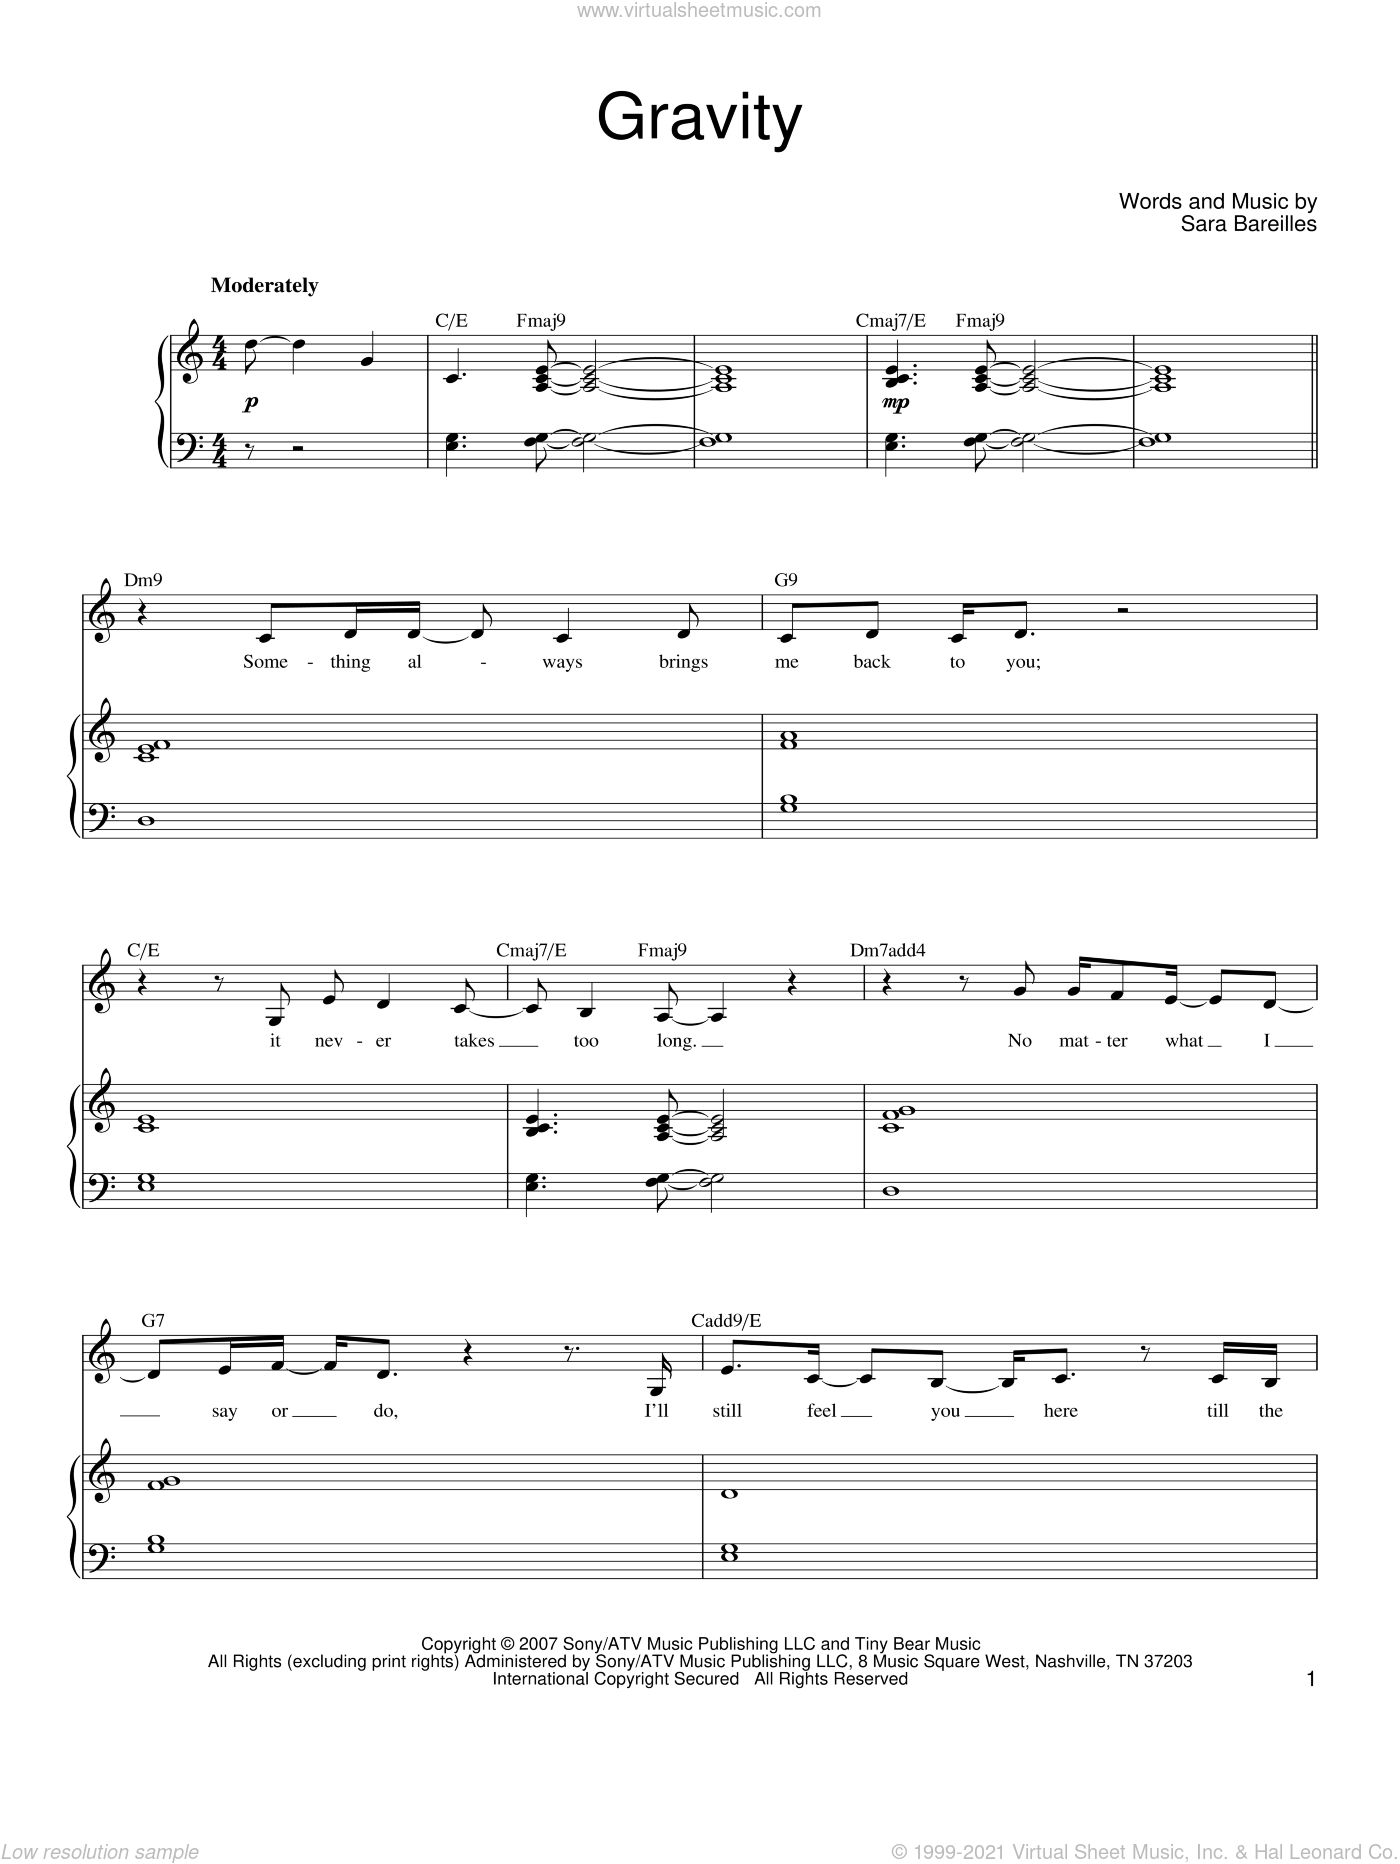 Gravity sheet music for voice, piano or guitar by Sara Bareilles, intermediate skill level